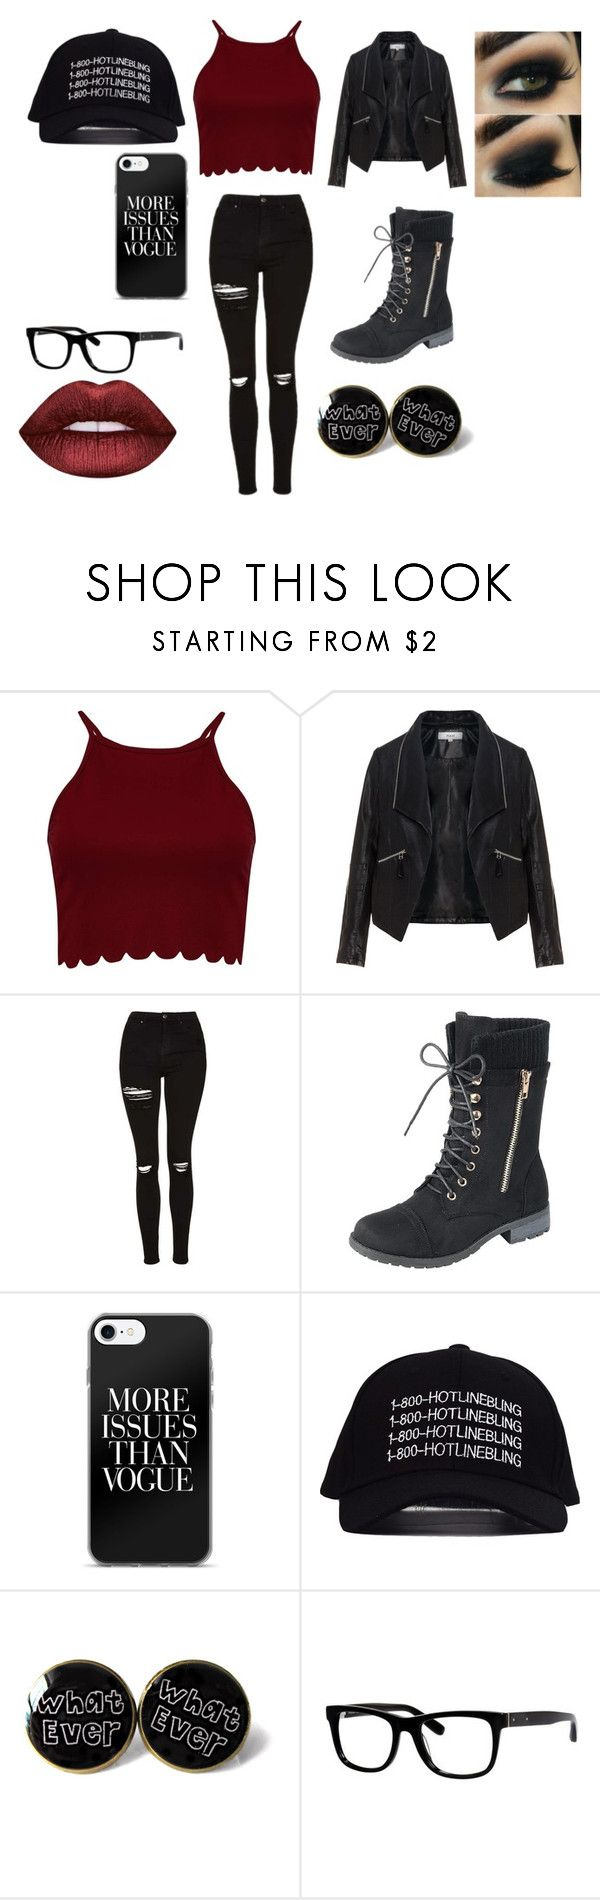 """bad girl""jaidenortiz on polyvore featuring boohoo"